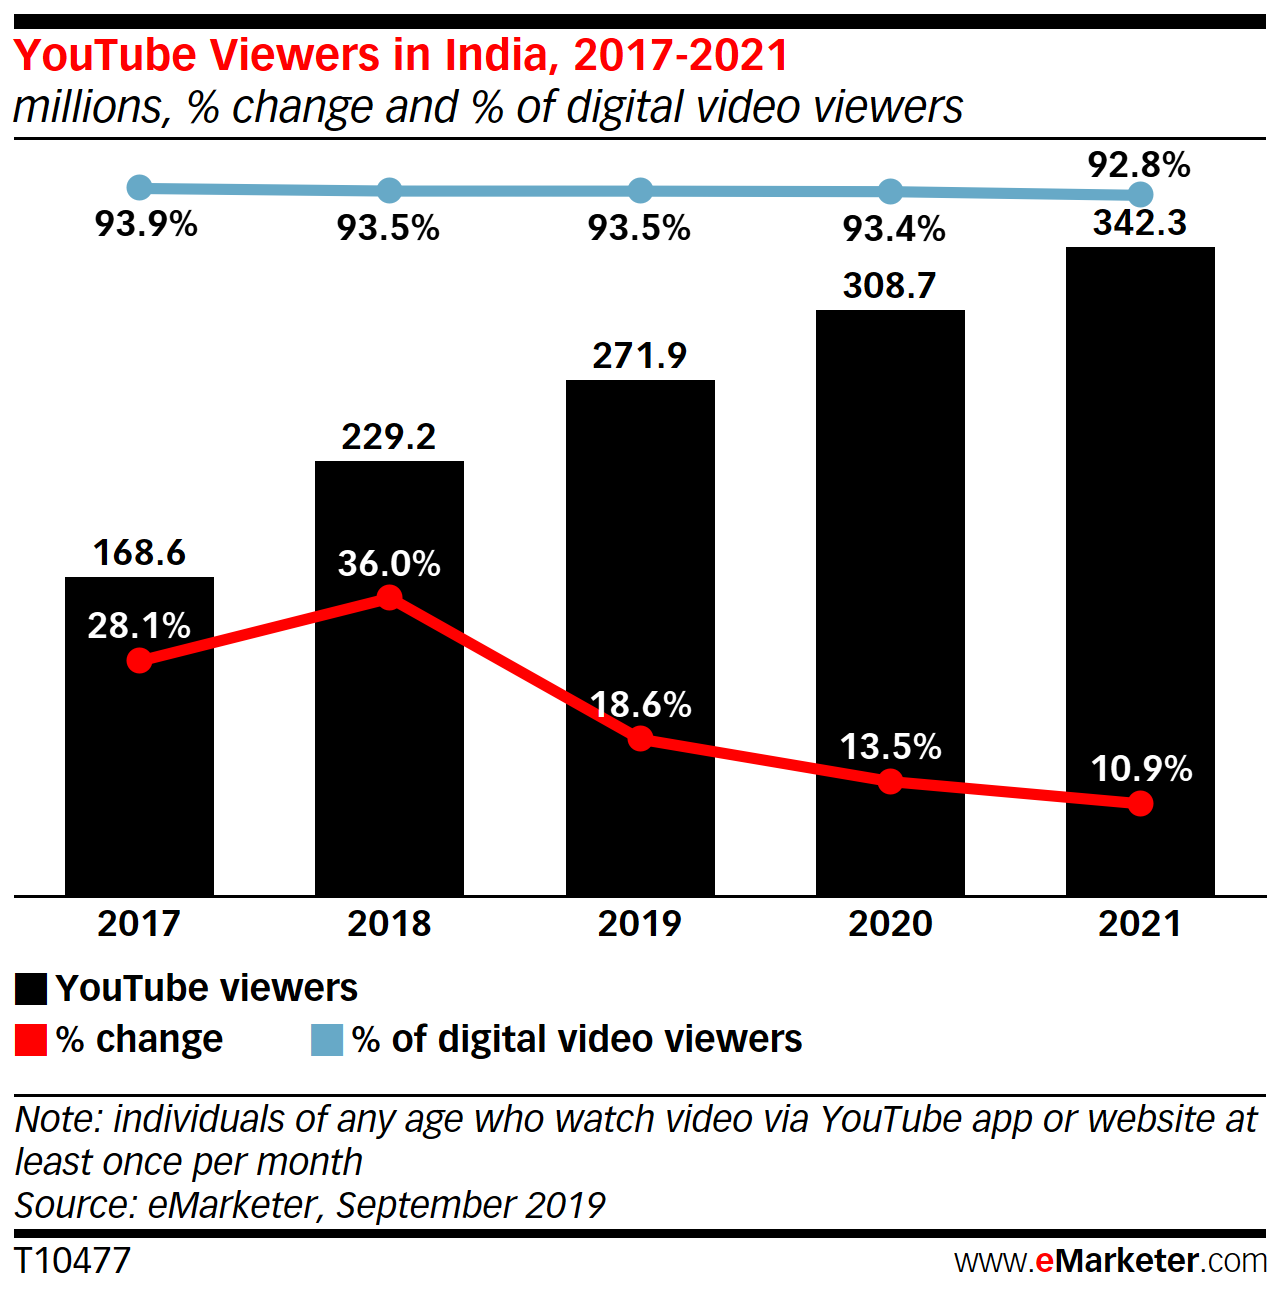 YouTube viewers in India